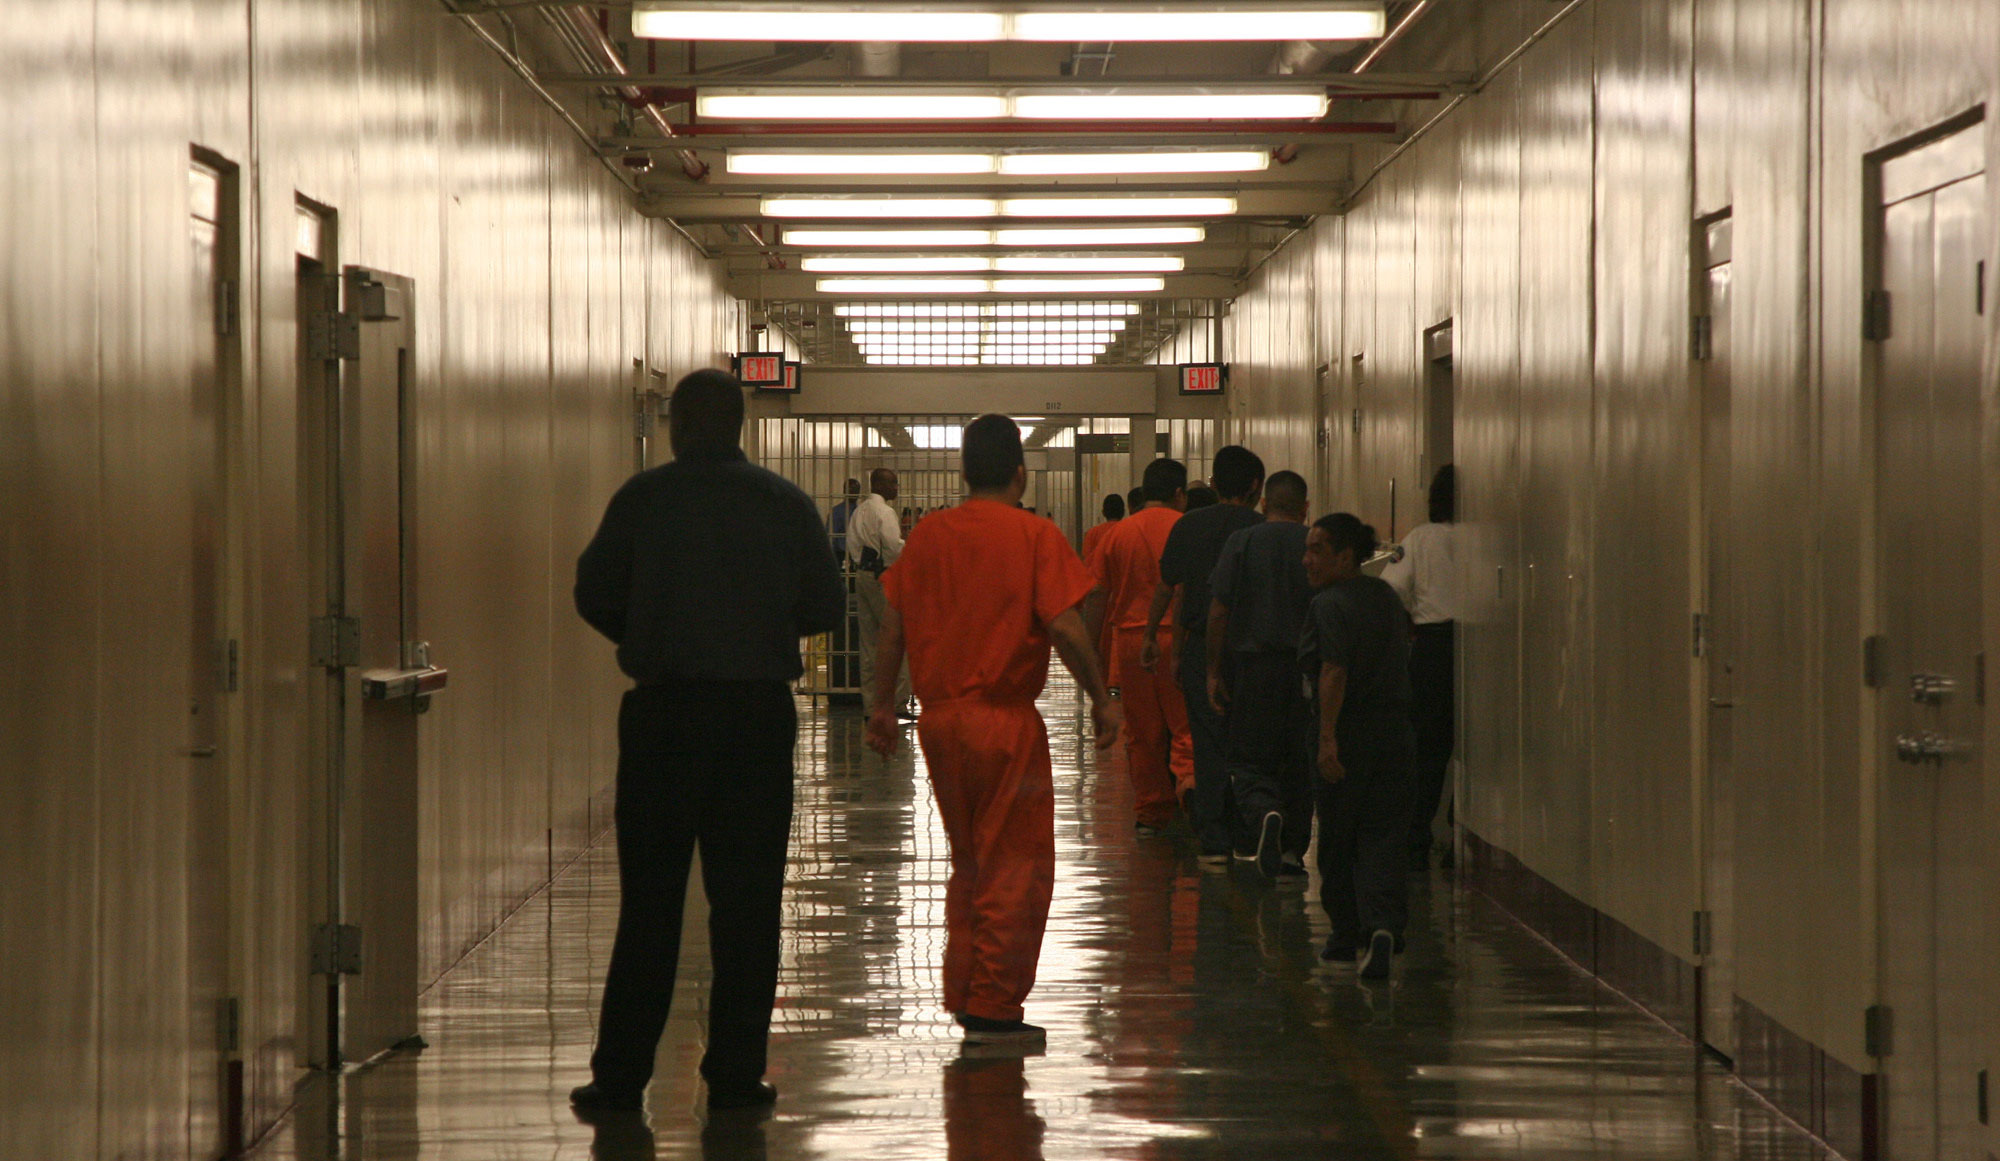 Detainees leave the the cafeteria at the Stewart Detention Facility, a Corrections Corporation of America immigration facility in Lumpkin, Georgia.